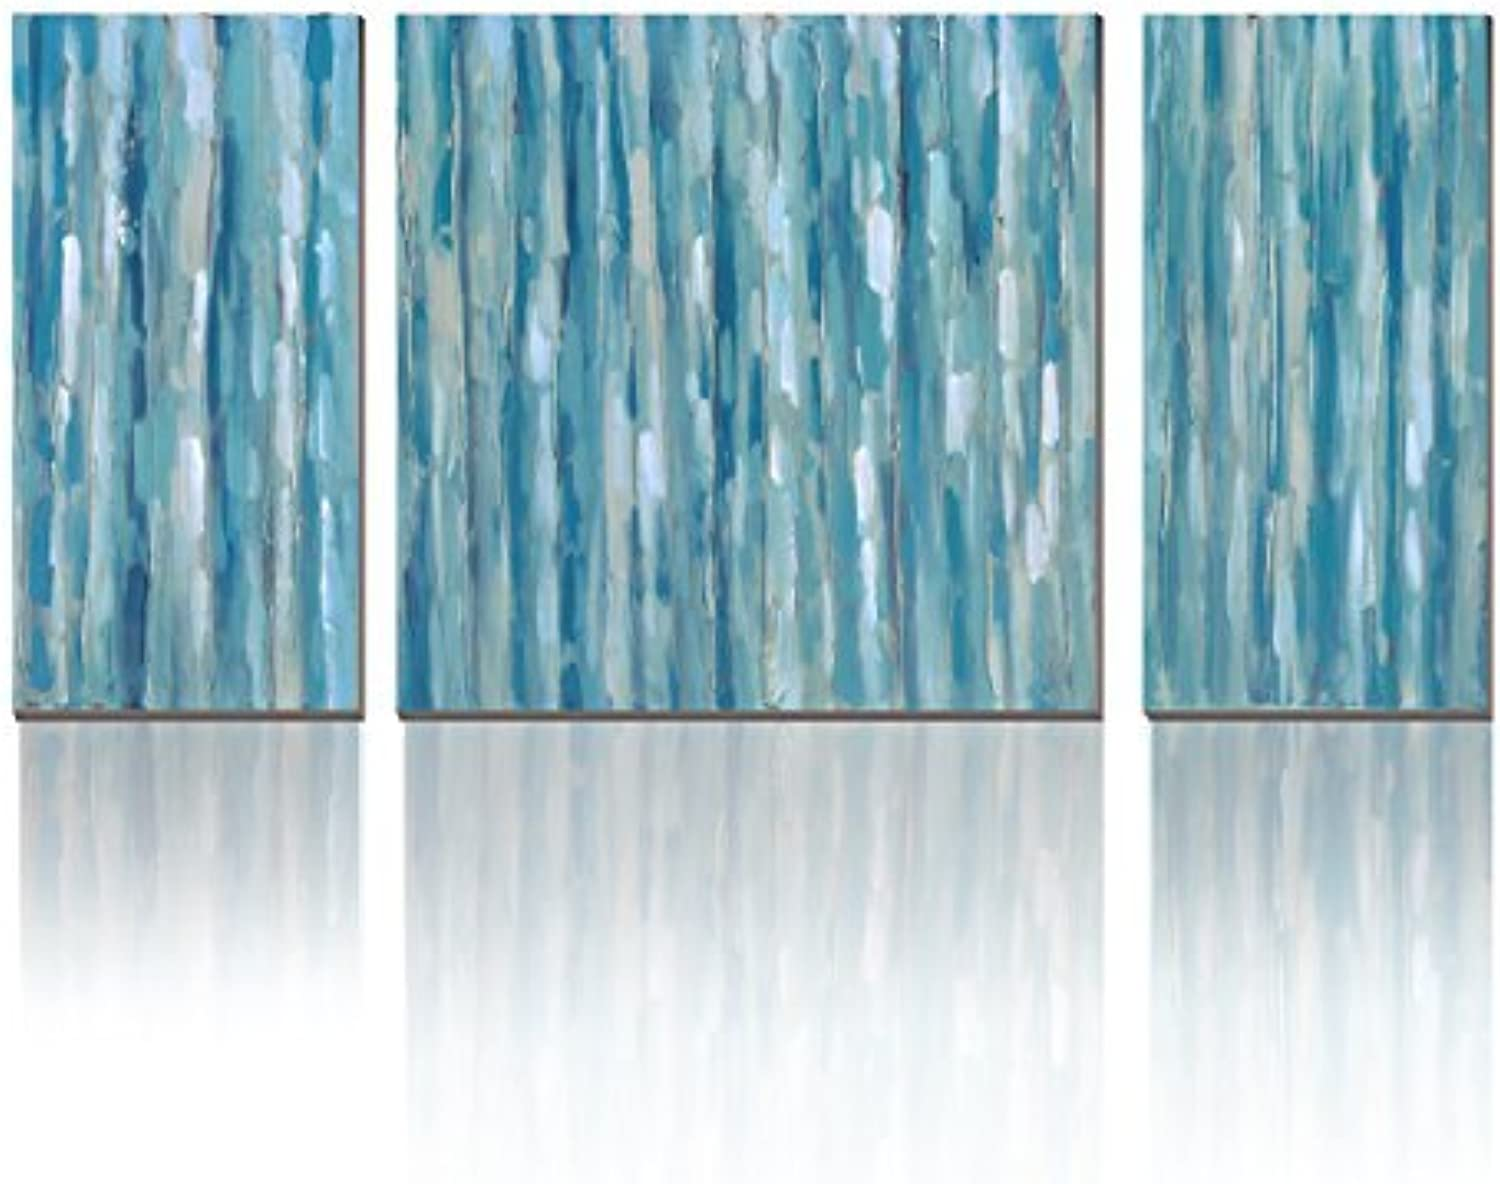 3Hdeko - Teal Abstract Wall Art Aqua bluee Stripes Painting Print on Canvas - Modern 3 Pieces Turquoise Wall Decor for Living Room Bedroom Dining Room Bathroom, Ready to Hang